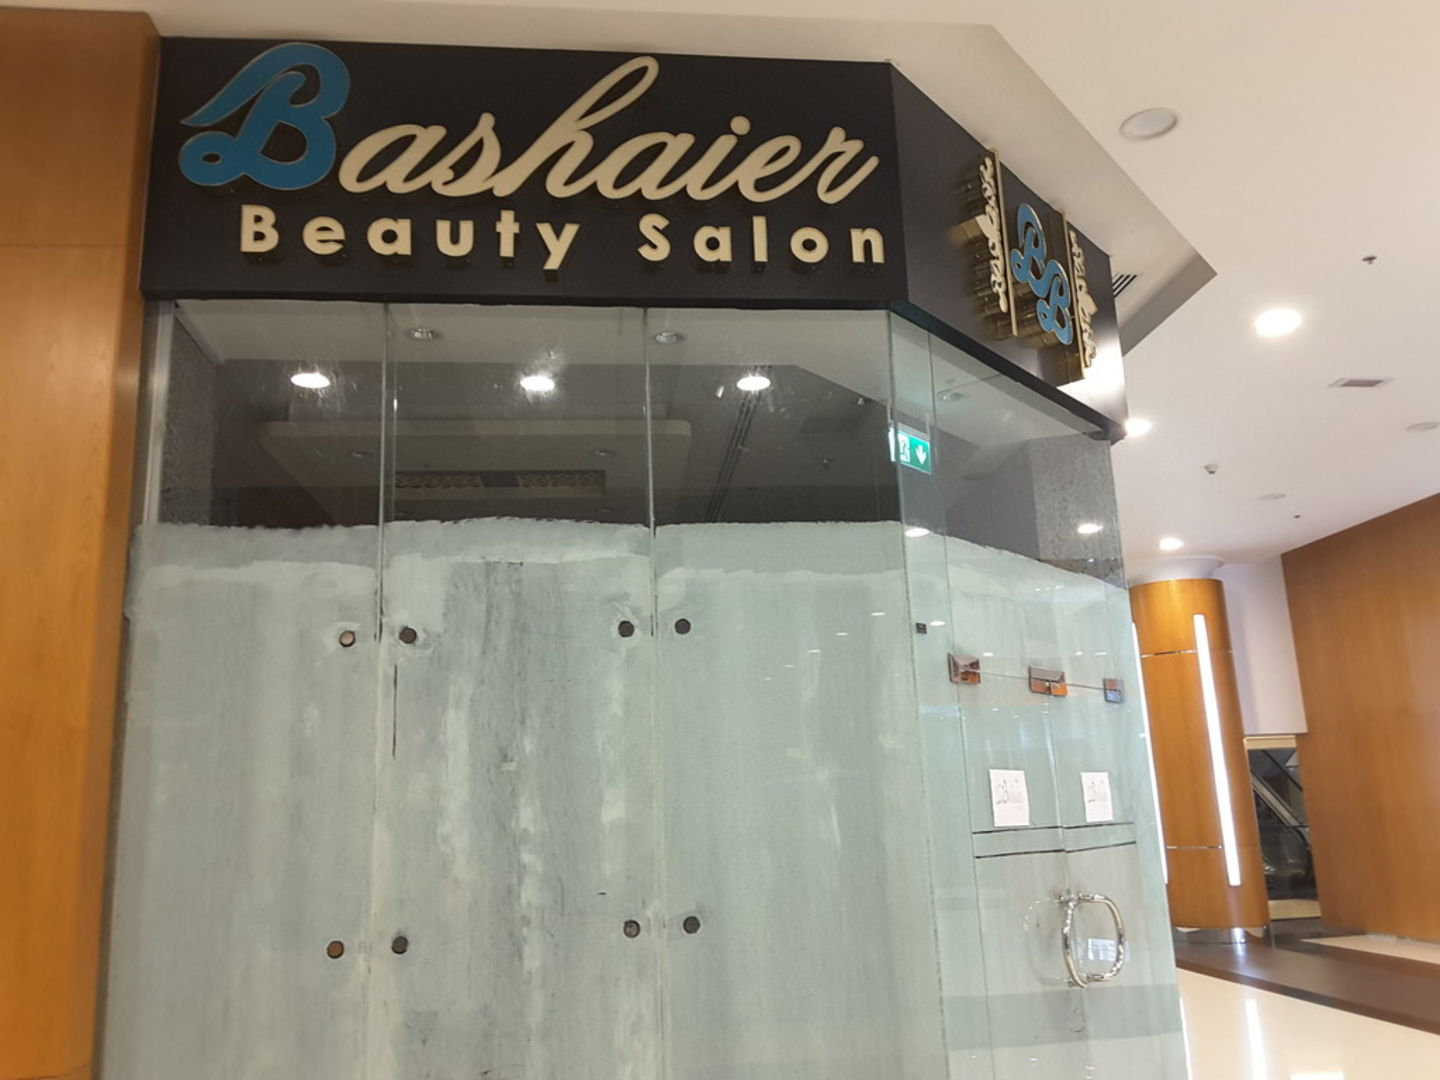 HiDubai-business-bashaier-beauty-salon-beauty-wellness-health-beauty-salons-dubai-international-financial-centre-zaabeel-2-dubai-2